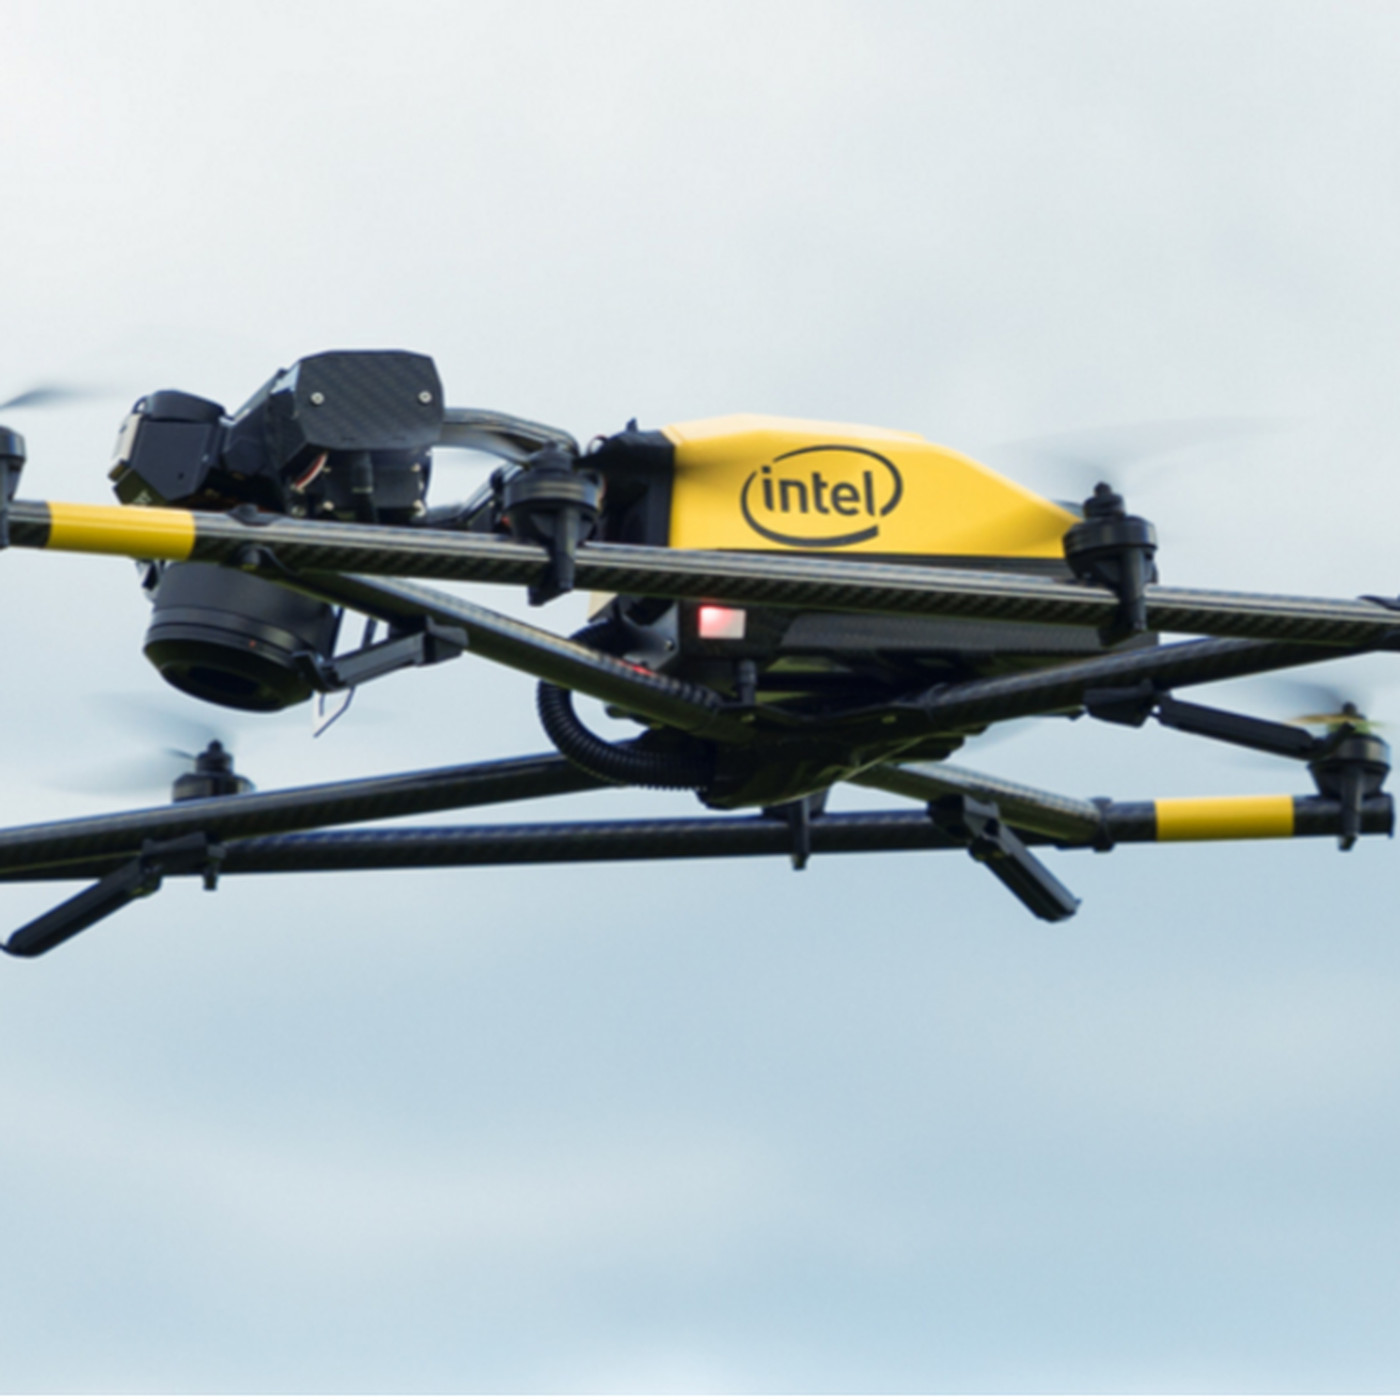 Sweden places ban on flying camera drones without surveillance permits b82a6f91ca7